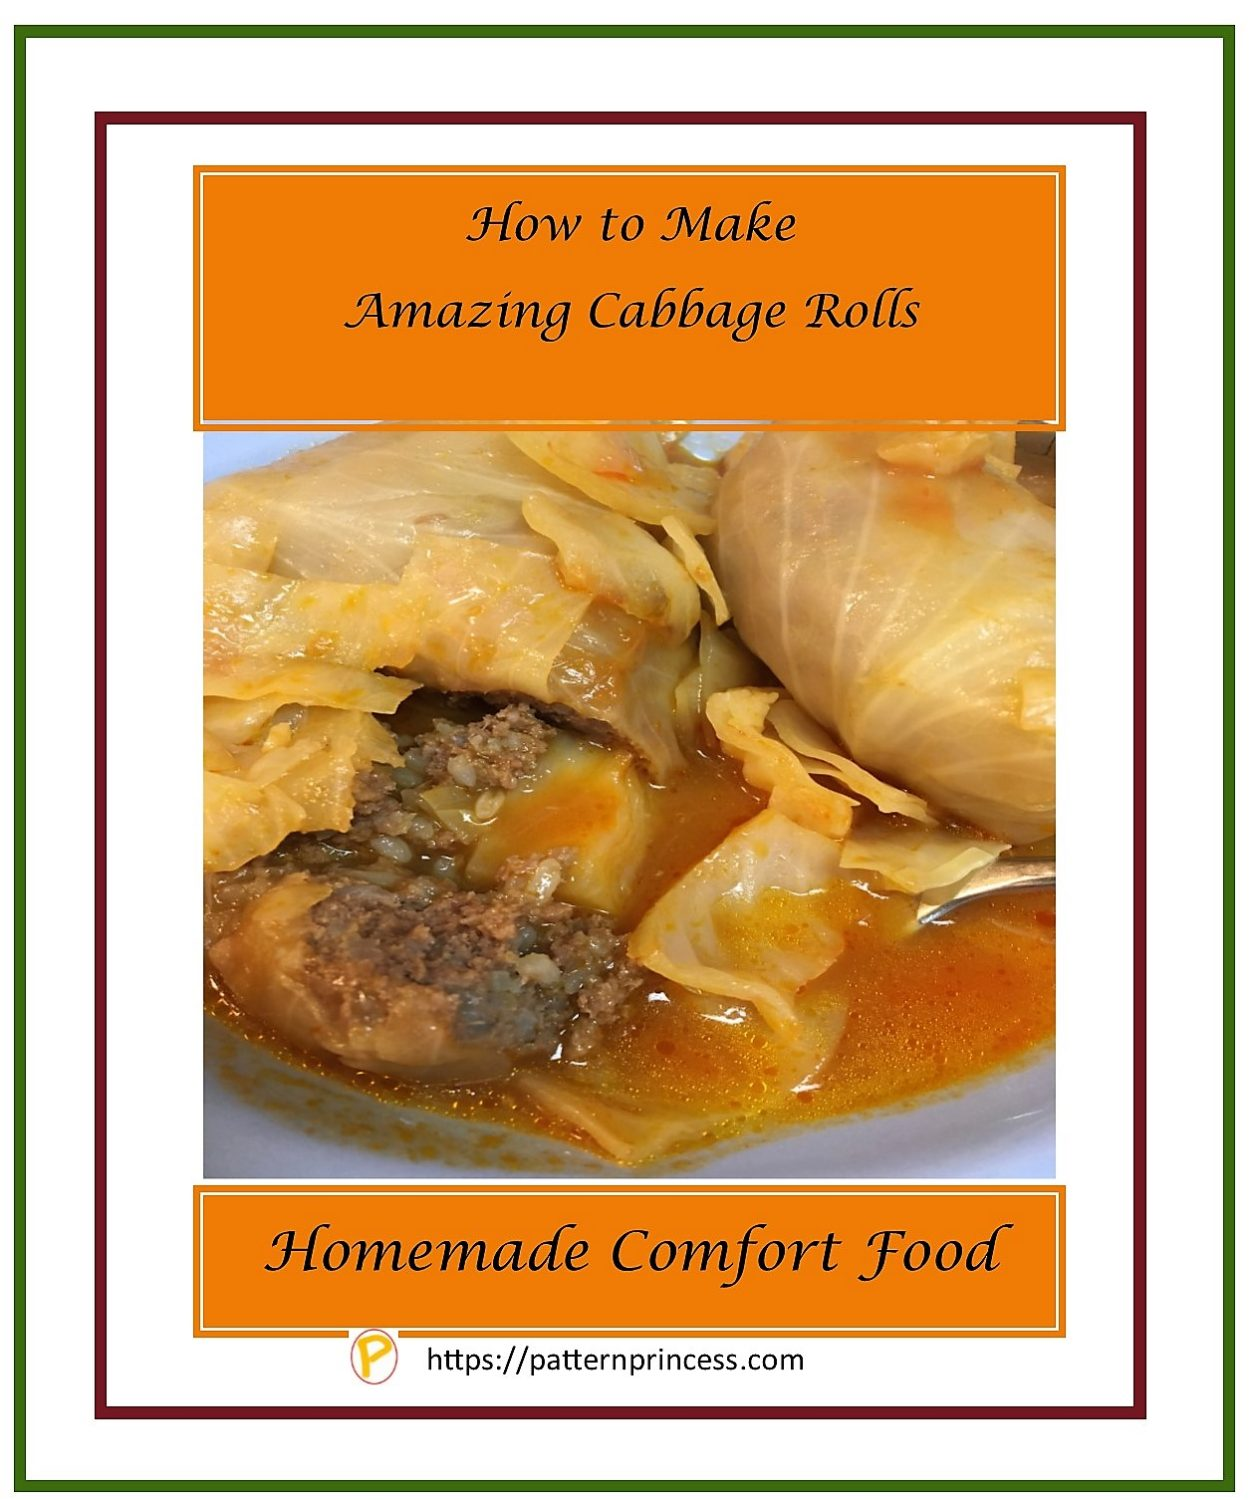 How to make amazing cabbage rolls 1